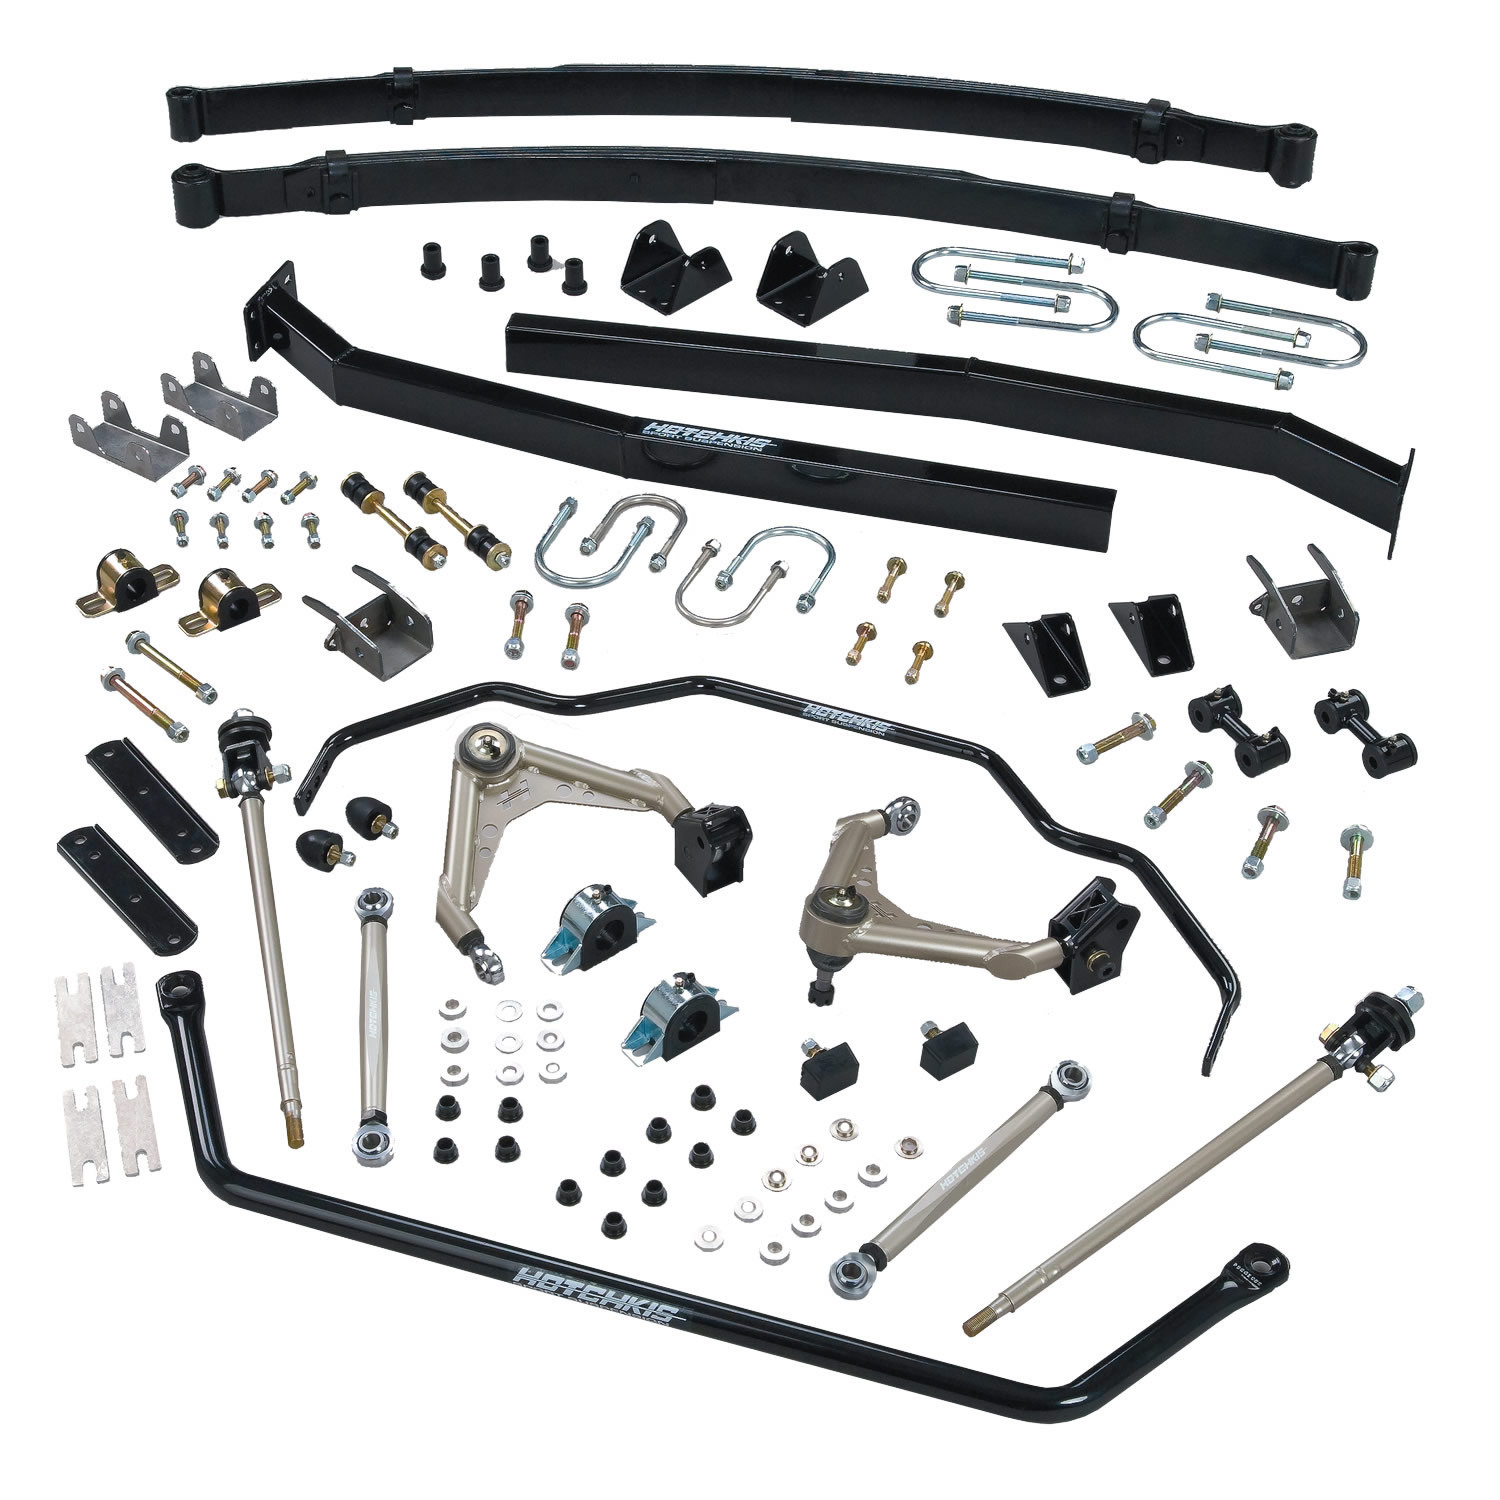 hight resolution of hotchkis sport suspension systems parts and complete bolt in packages blog archive 1970 1974 dodge challenger hotchkis tvs total vehicle suspension